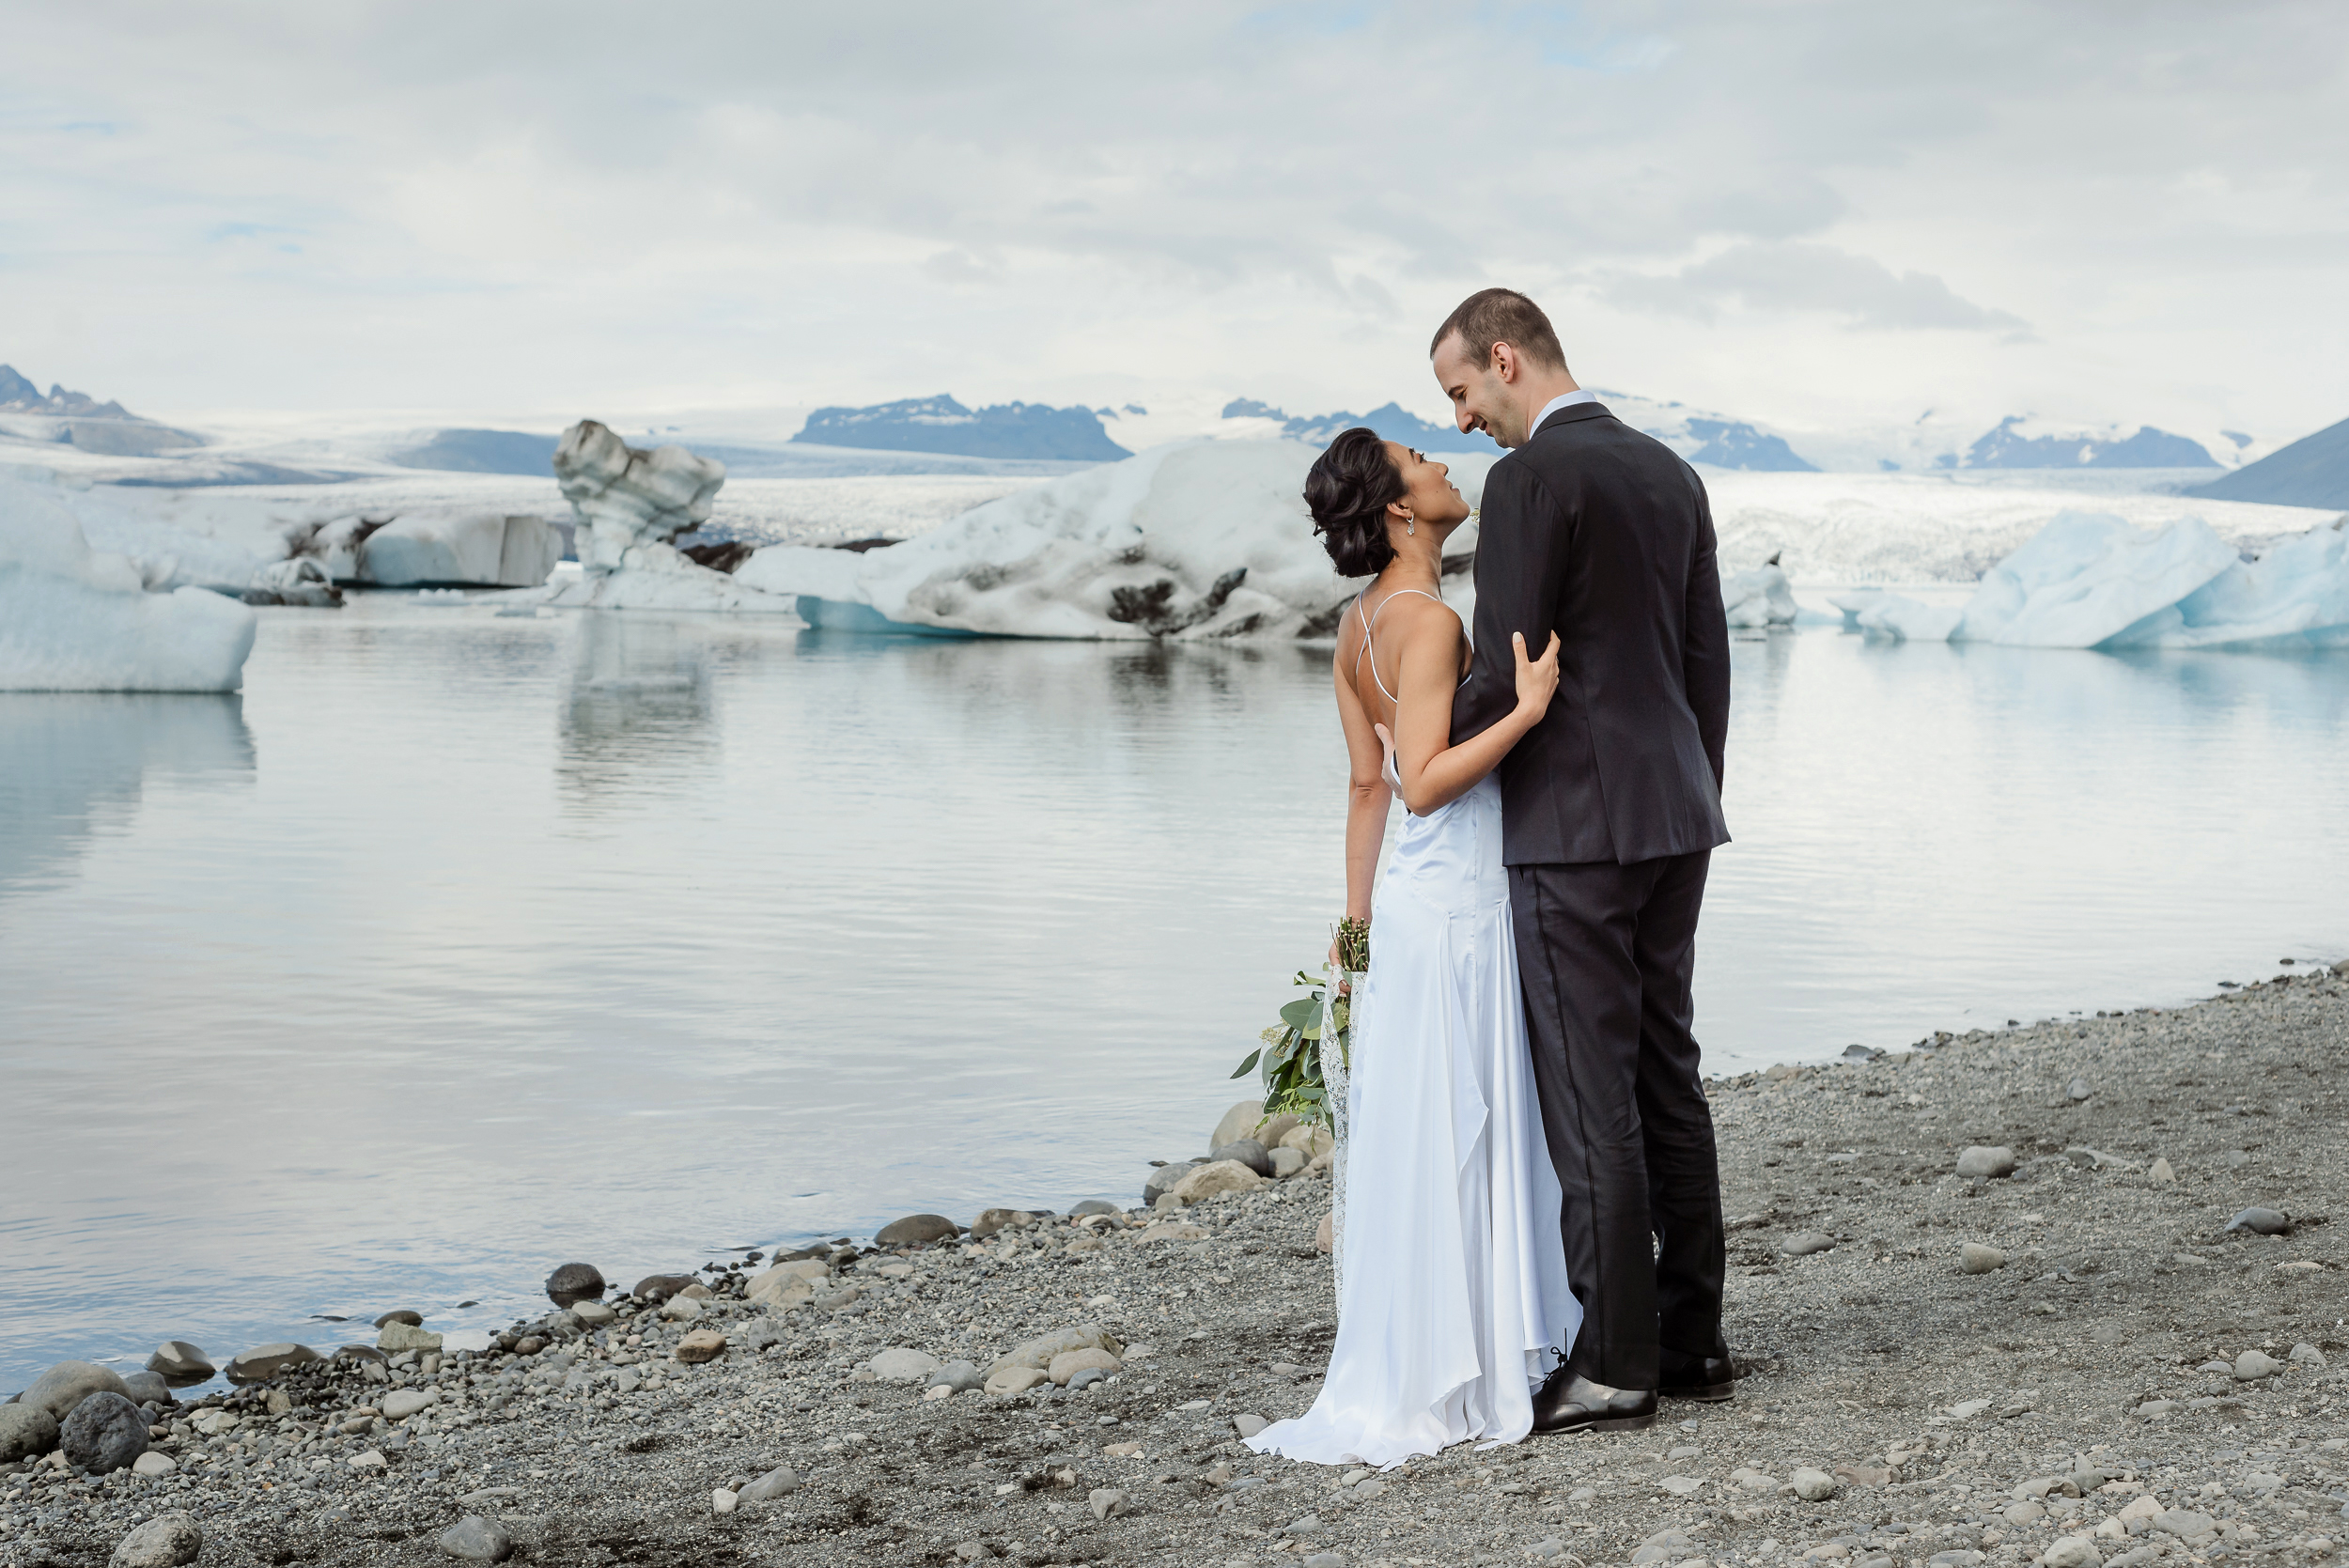 07-destination-wedding-iceland-engagement-session-vivianchen-028.jpg